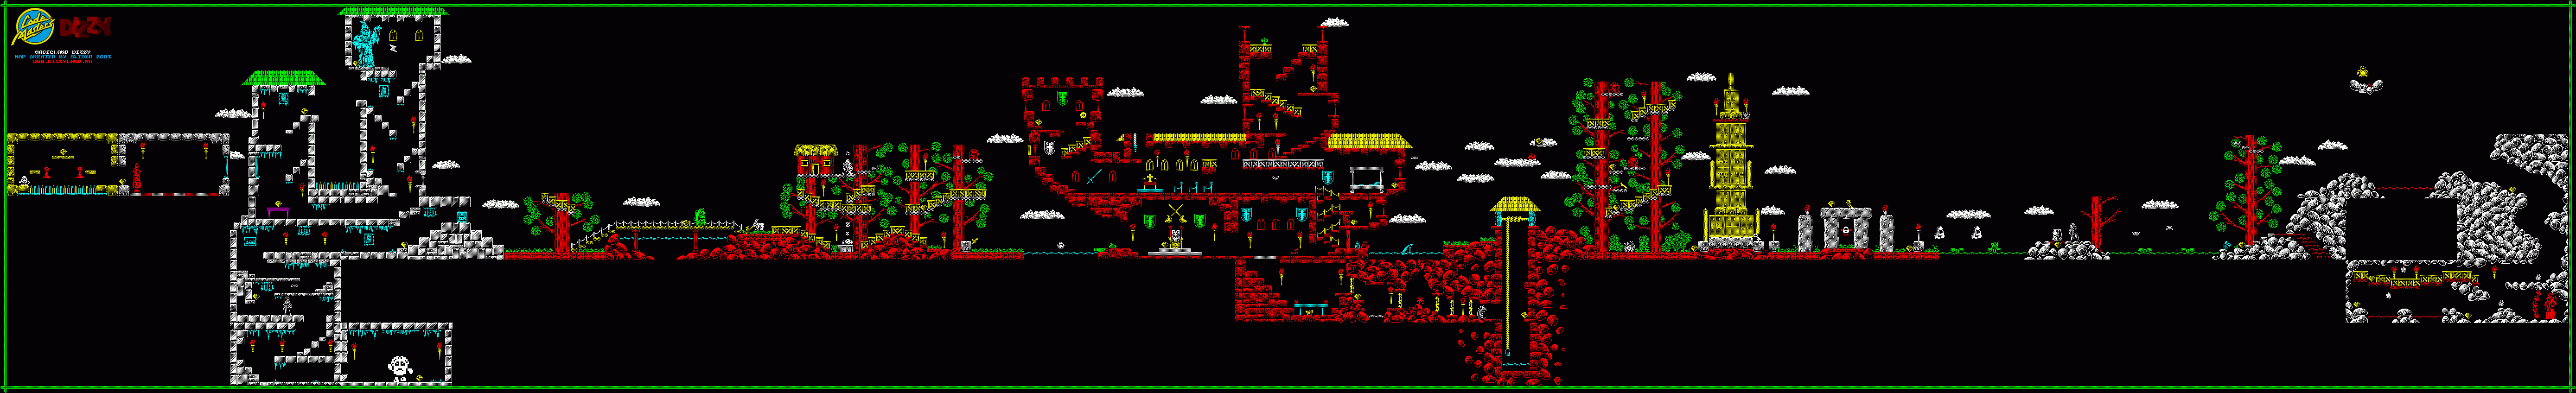 Game Map (Spectrum/Amstrad)